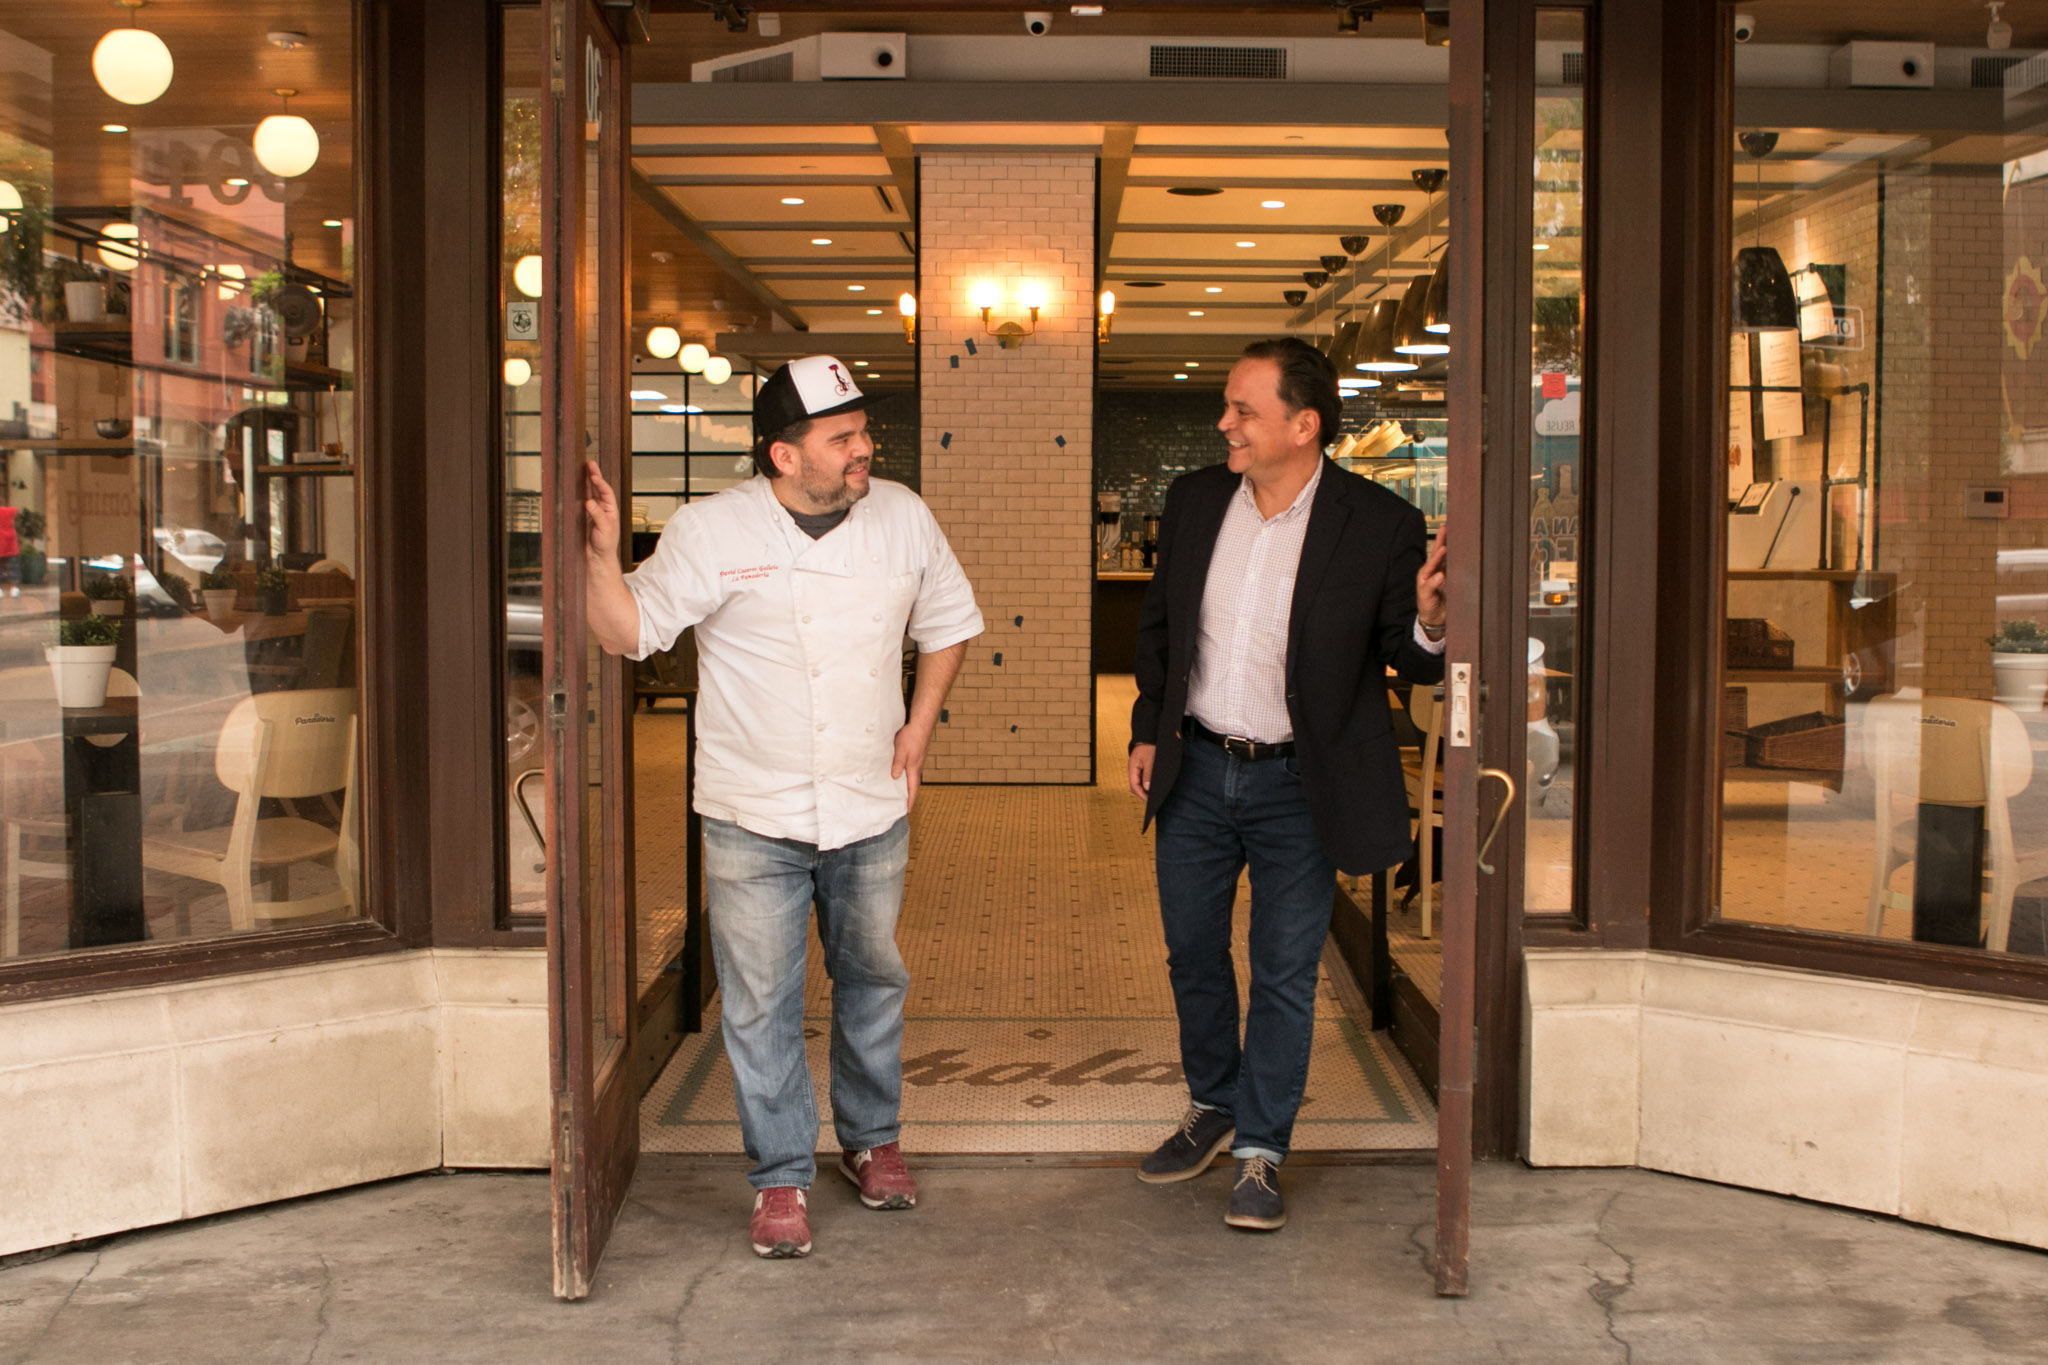 La Panadería co-owners and brothers (from left) David Caceres Galicia and José Caceres open the doors to the Houston Street entrance of La Panaderia.